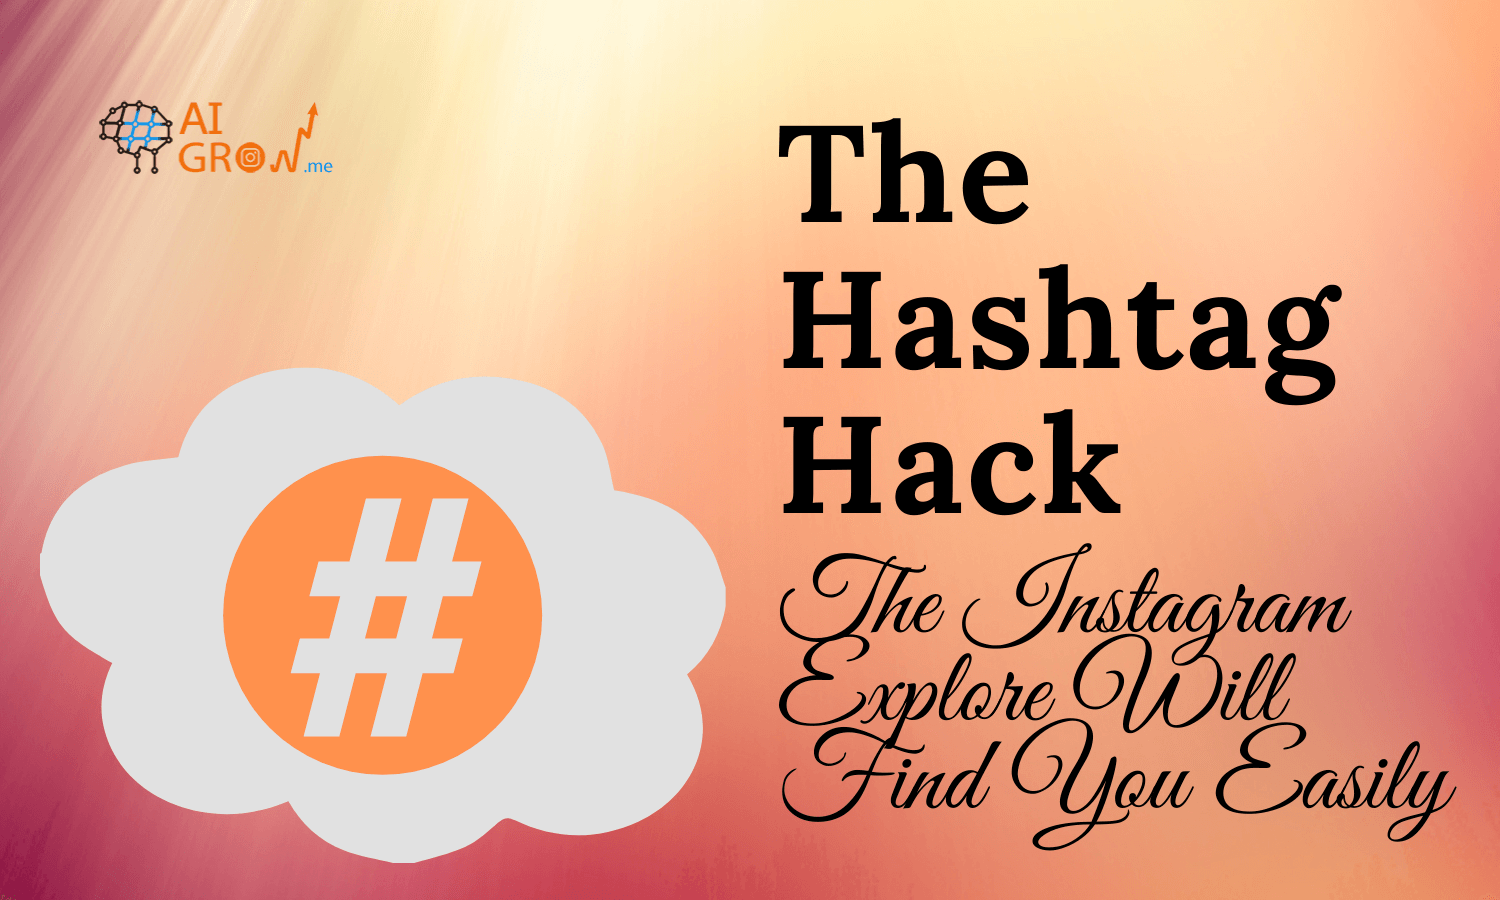 The Hashtag Hack: How to Bring your Posts to the Top of the Explore Page